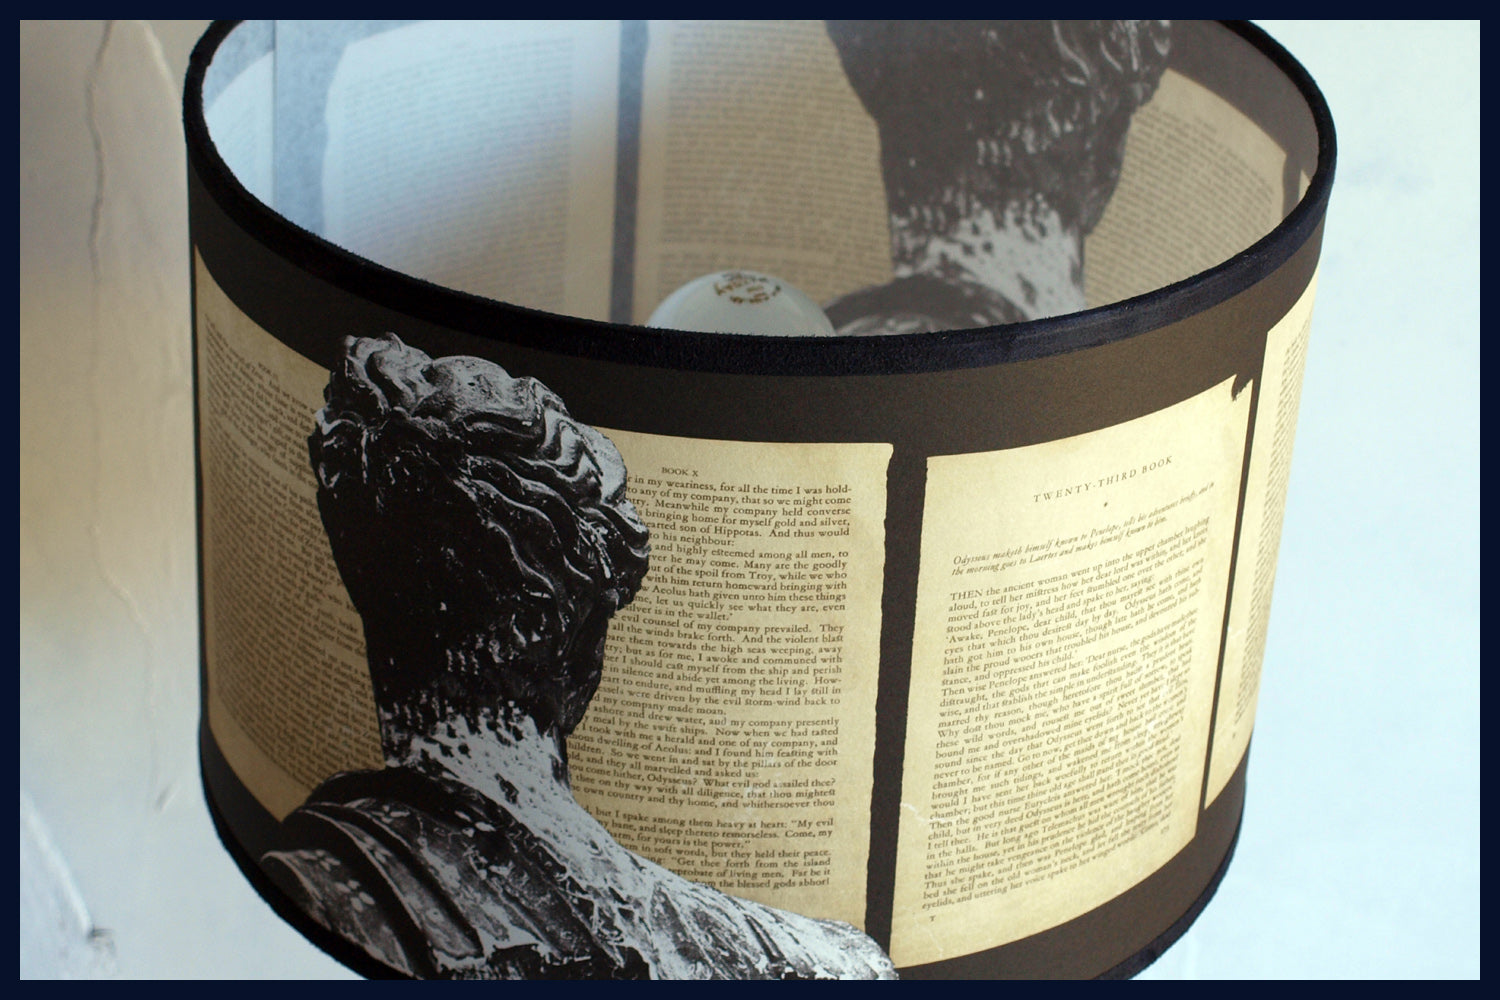 Odyssey - Limited Edition Lampshades Featuring Marble Statues & Pages of Homer's Odyssey